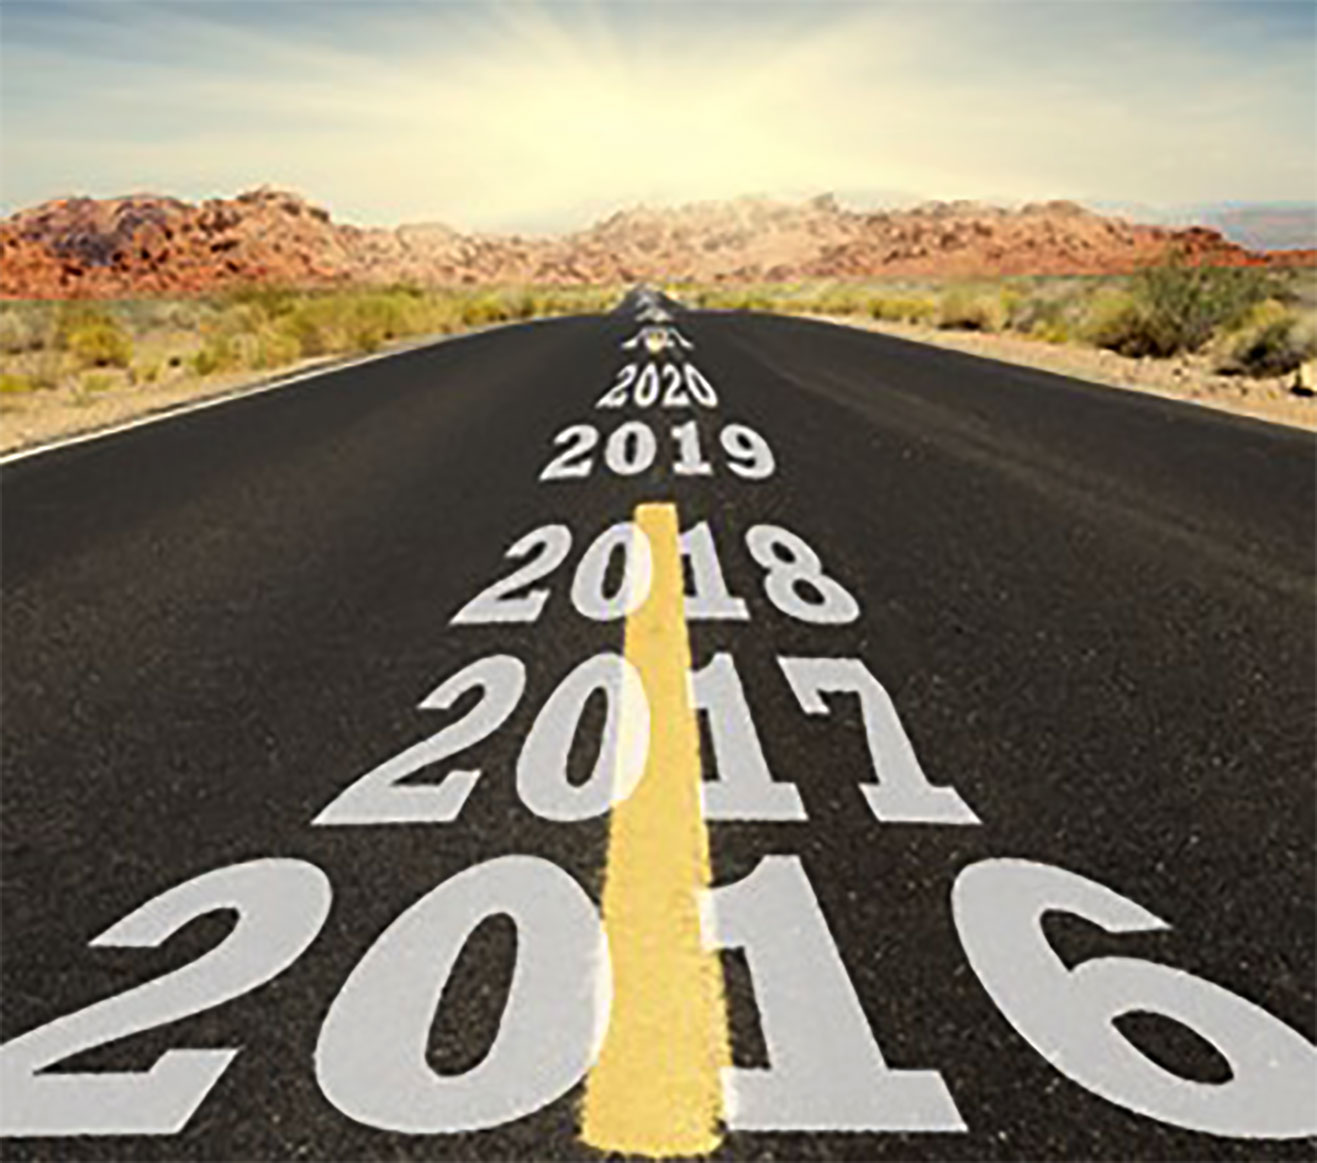 Image of a road with the years 2017 2018 2019